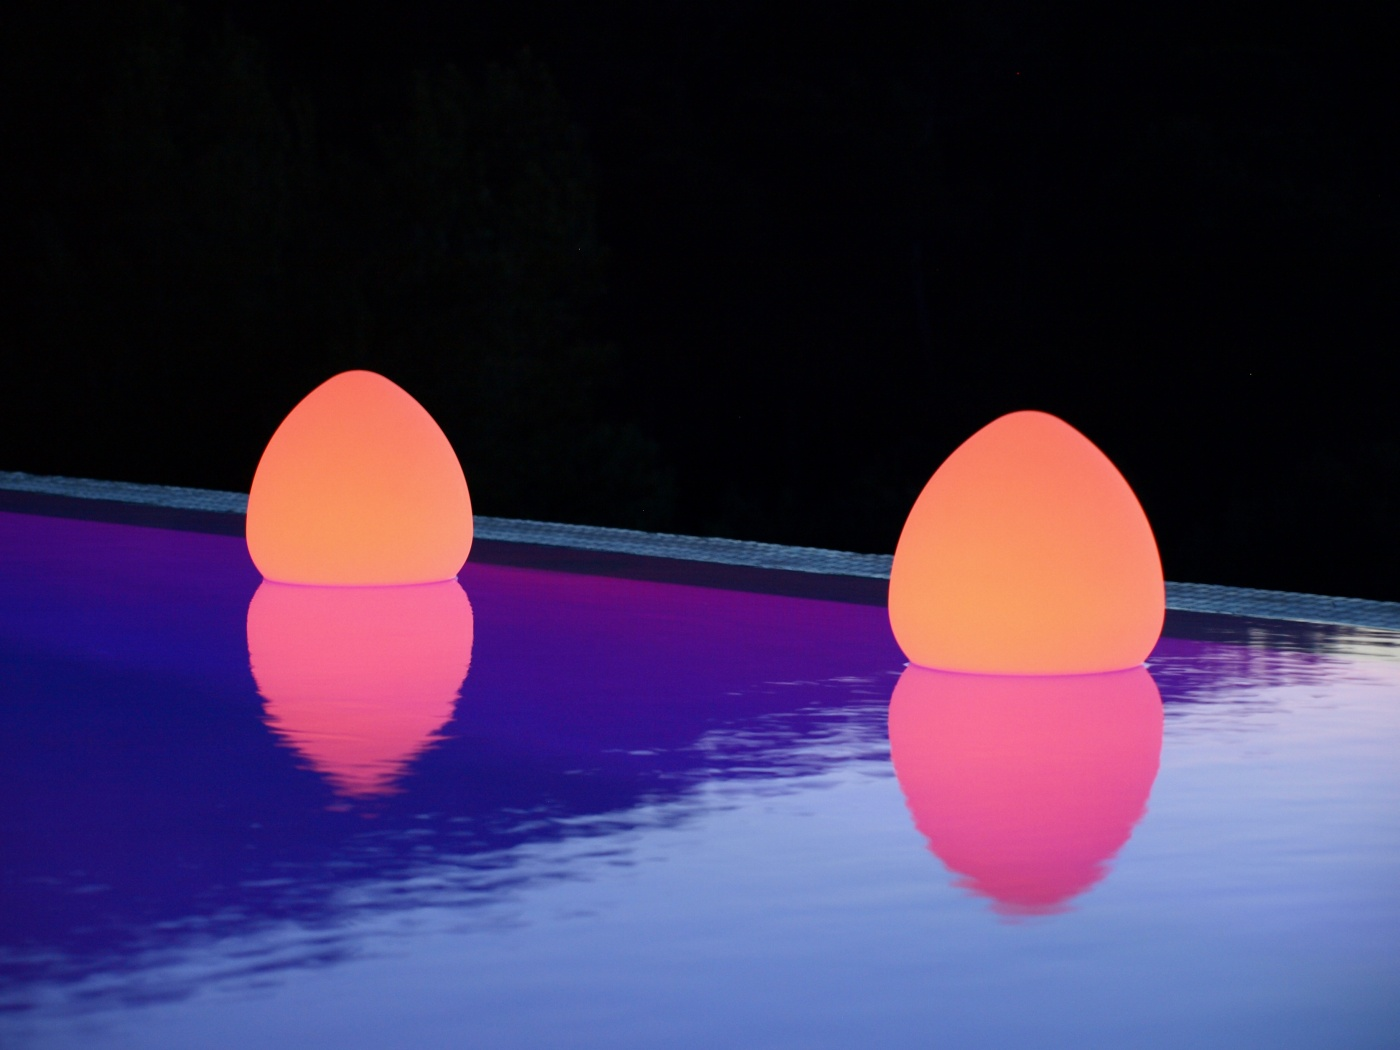 Schwimmleuchte-Pool-ROCK-ROCKY-SG LED Lampe Smart & Green bei VAN VUGHT Interiors in Berlin & Glieni